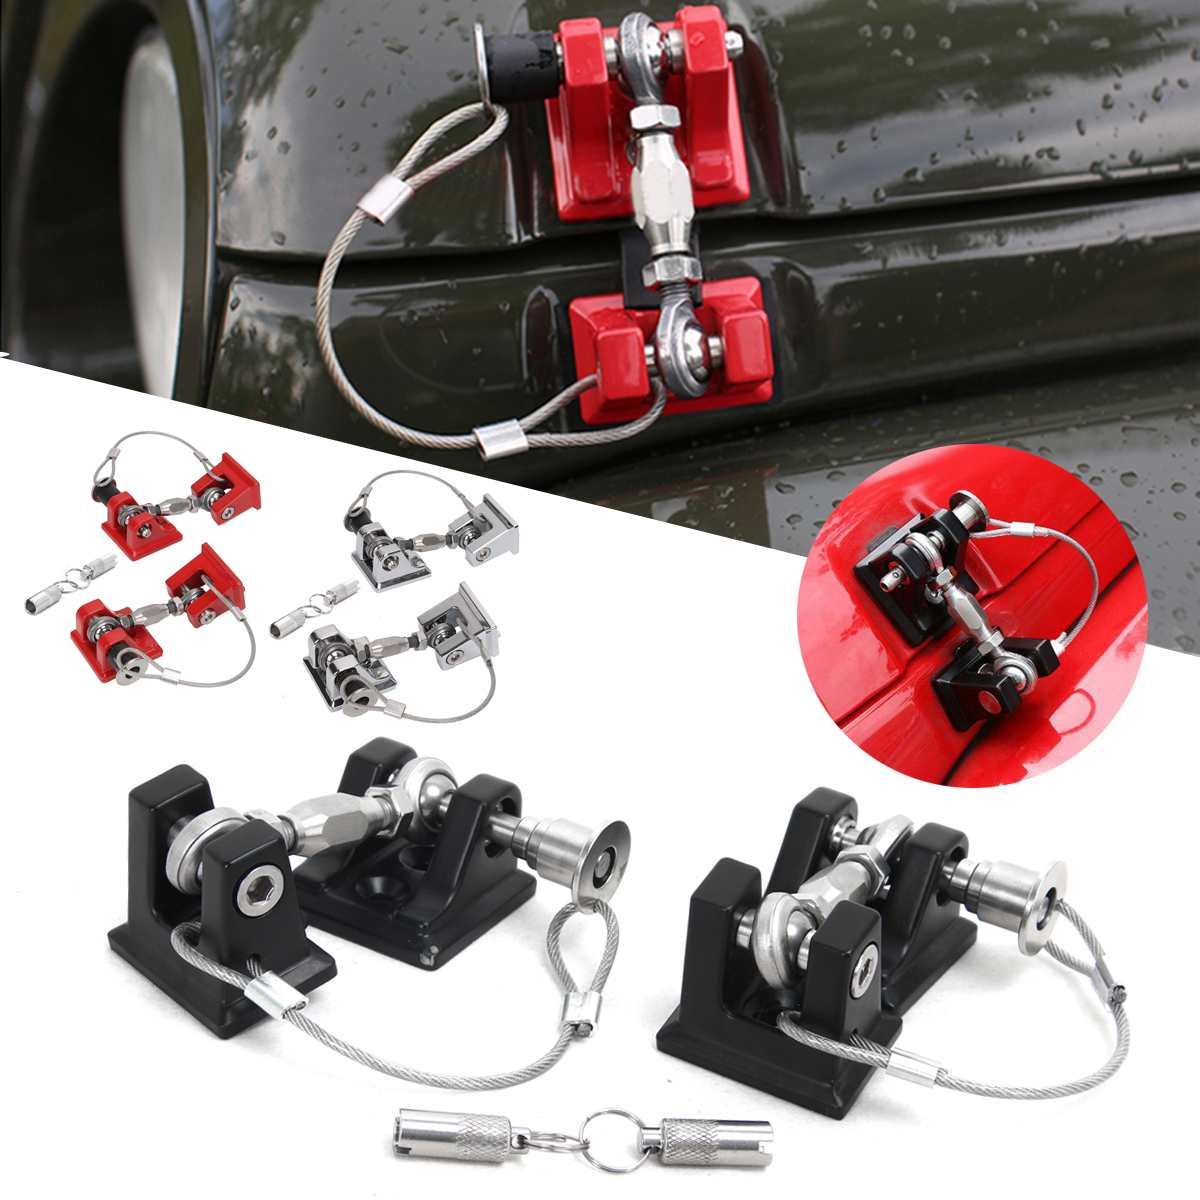 Black/Silver/Red 2pcs Car Engine Hood Catch Lock Kit Latches Catch Locking Anti-Theft Buckle For Jeep For Wrangler JK 2007-2017